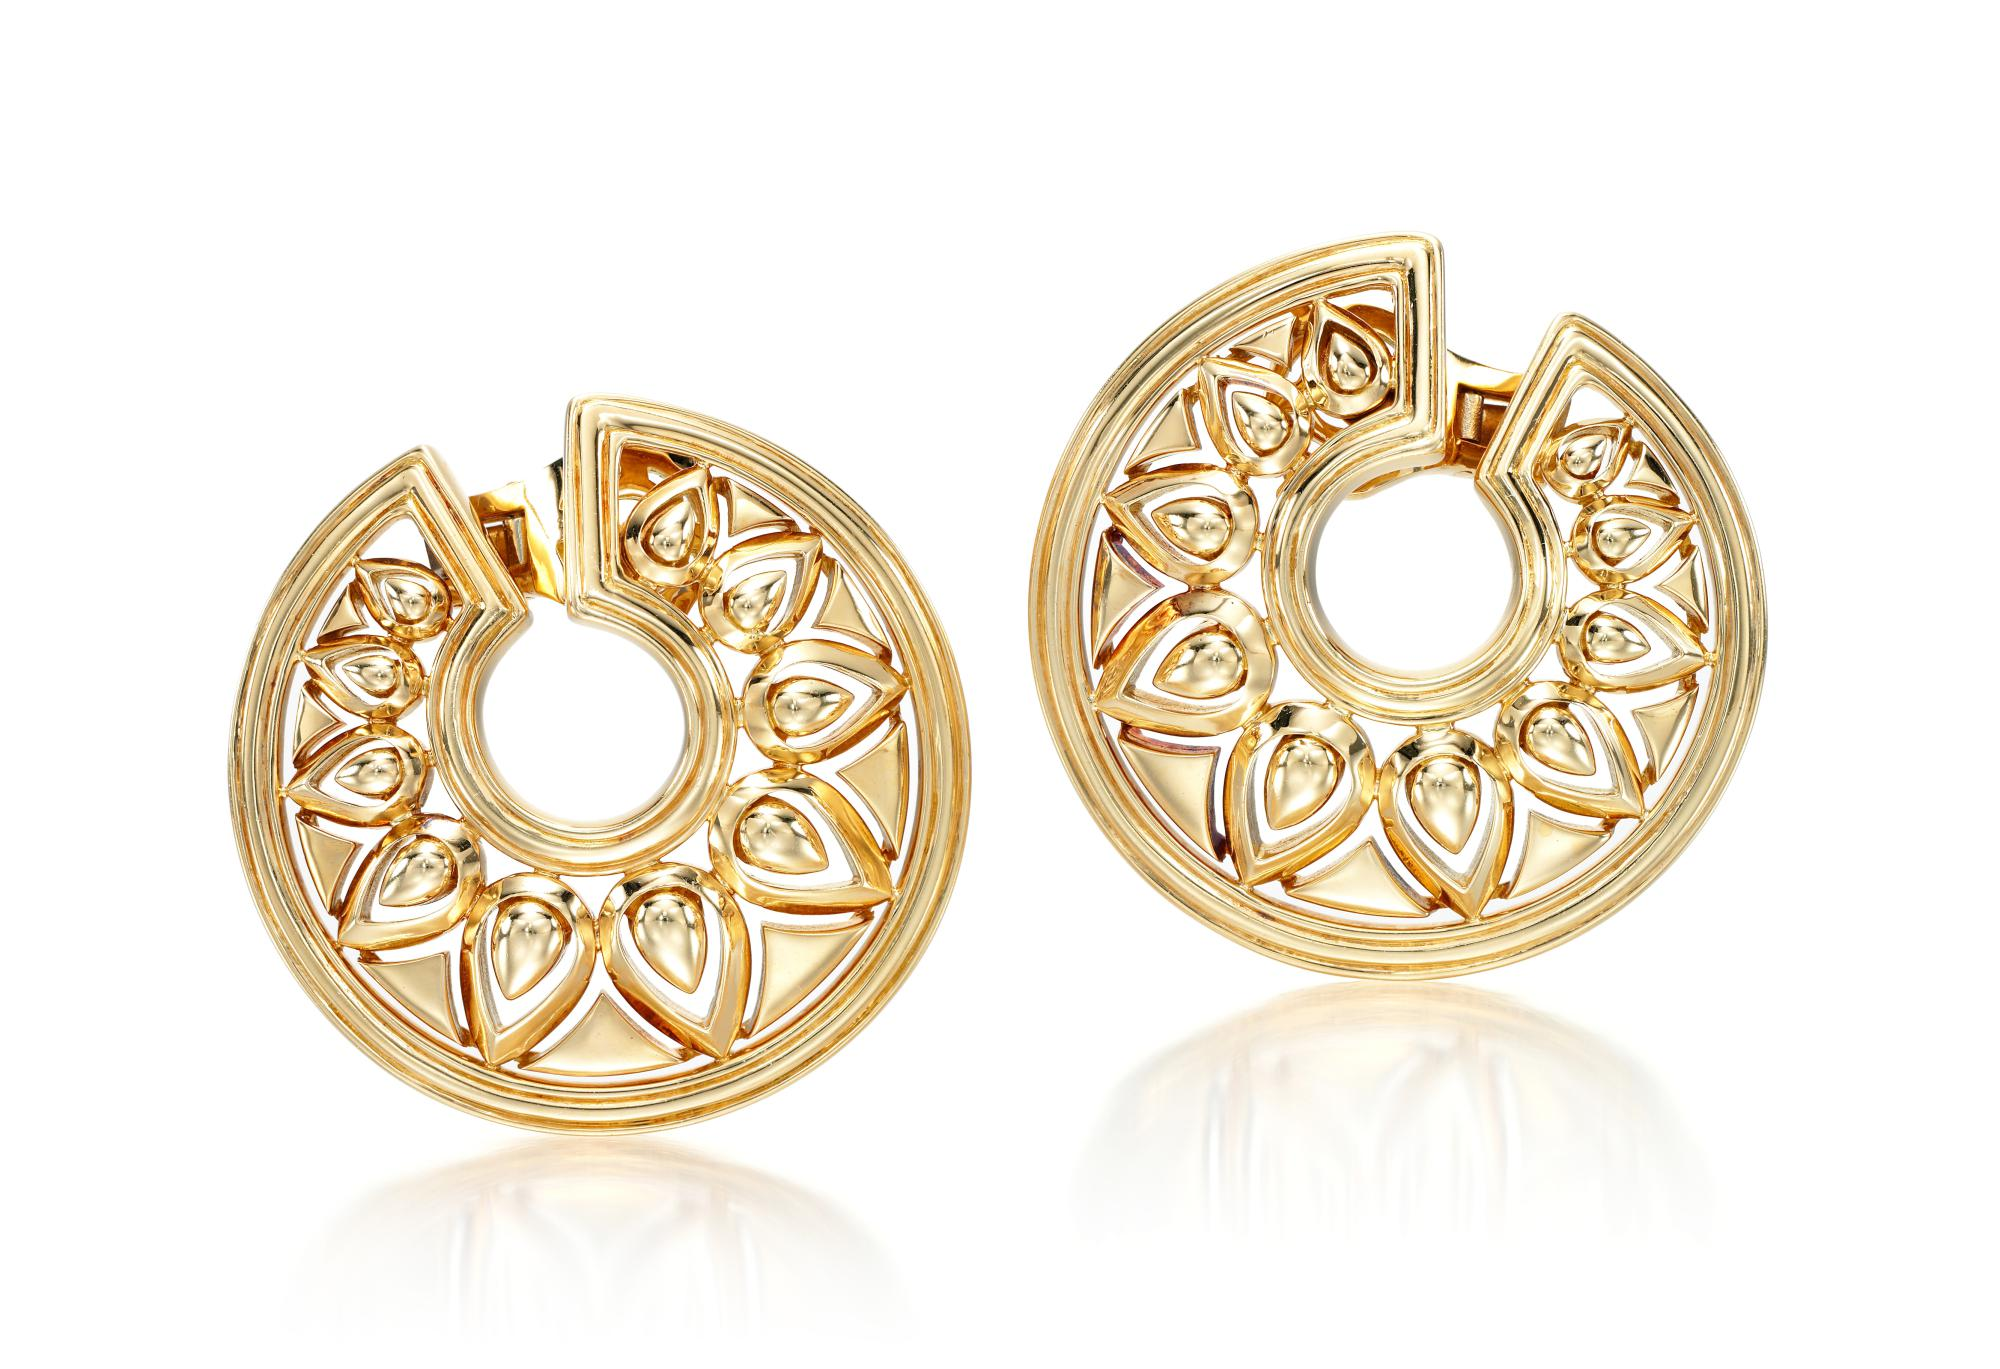 PAIR OF GOLD EAR CLIPS, 'TANJORE' | CARTIER